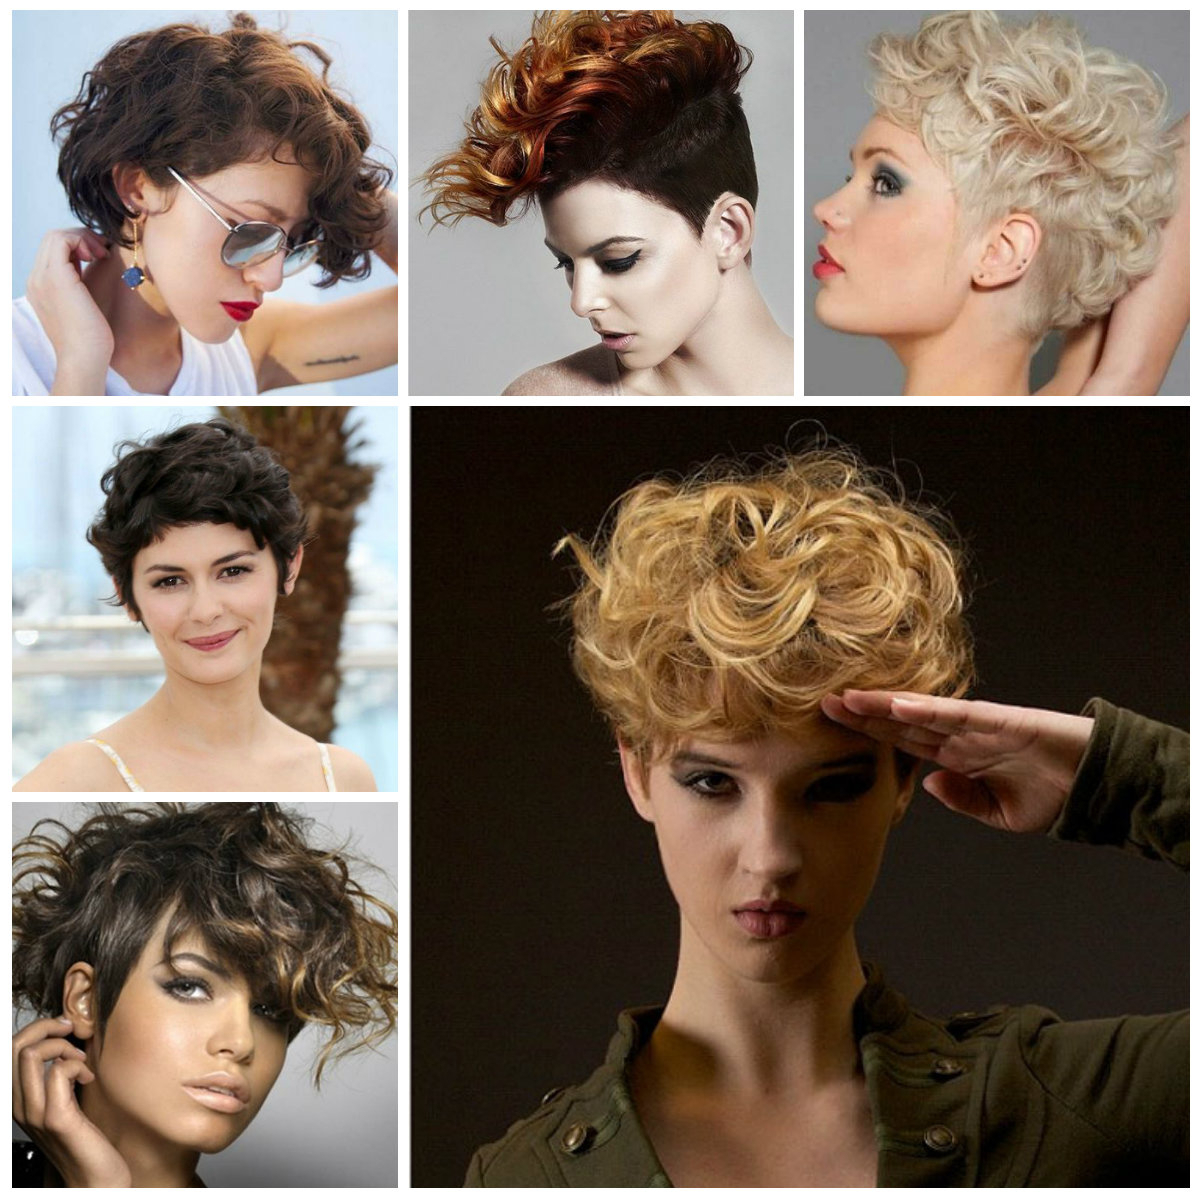 2019 Curly Pixie Haircuts | Hairstyles For Women 2019, Haircuts For Within Dark Blonde Short Curly Hairstyles (View 8 of 20)